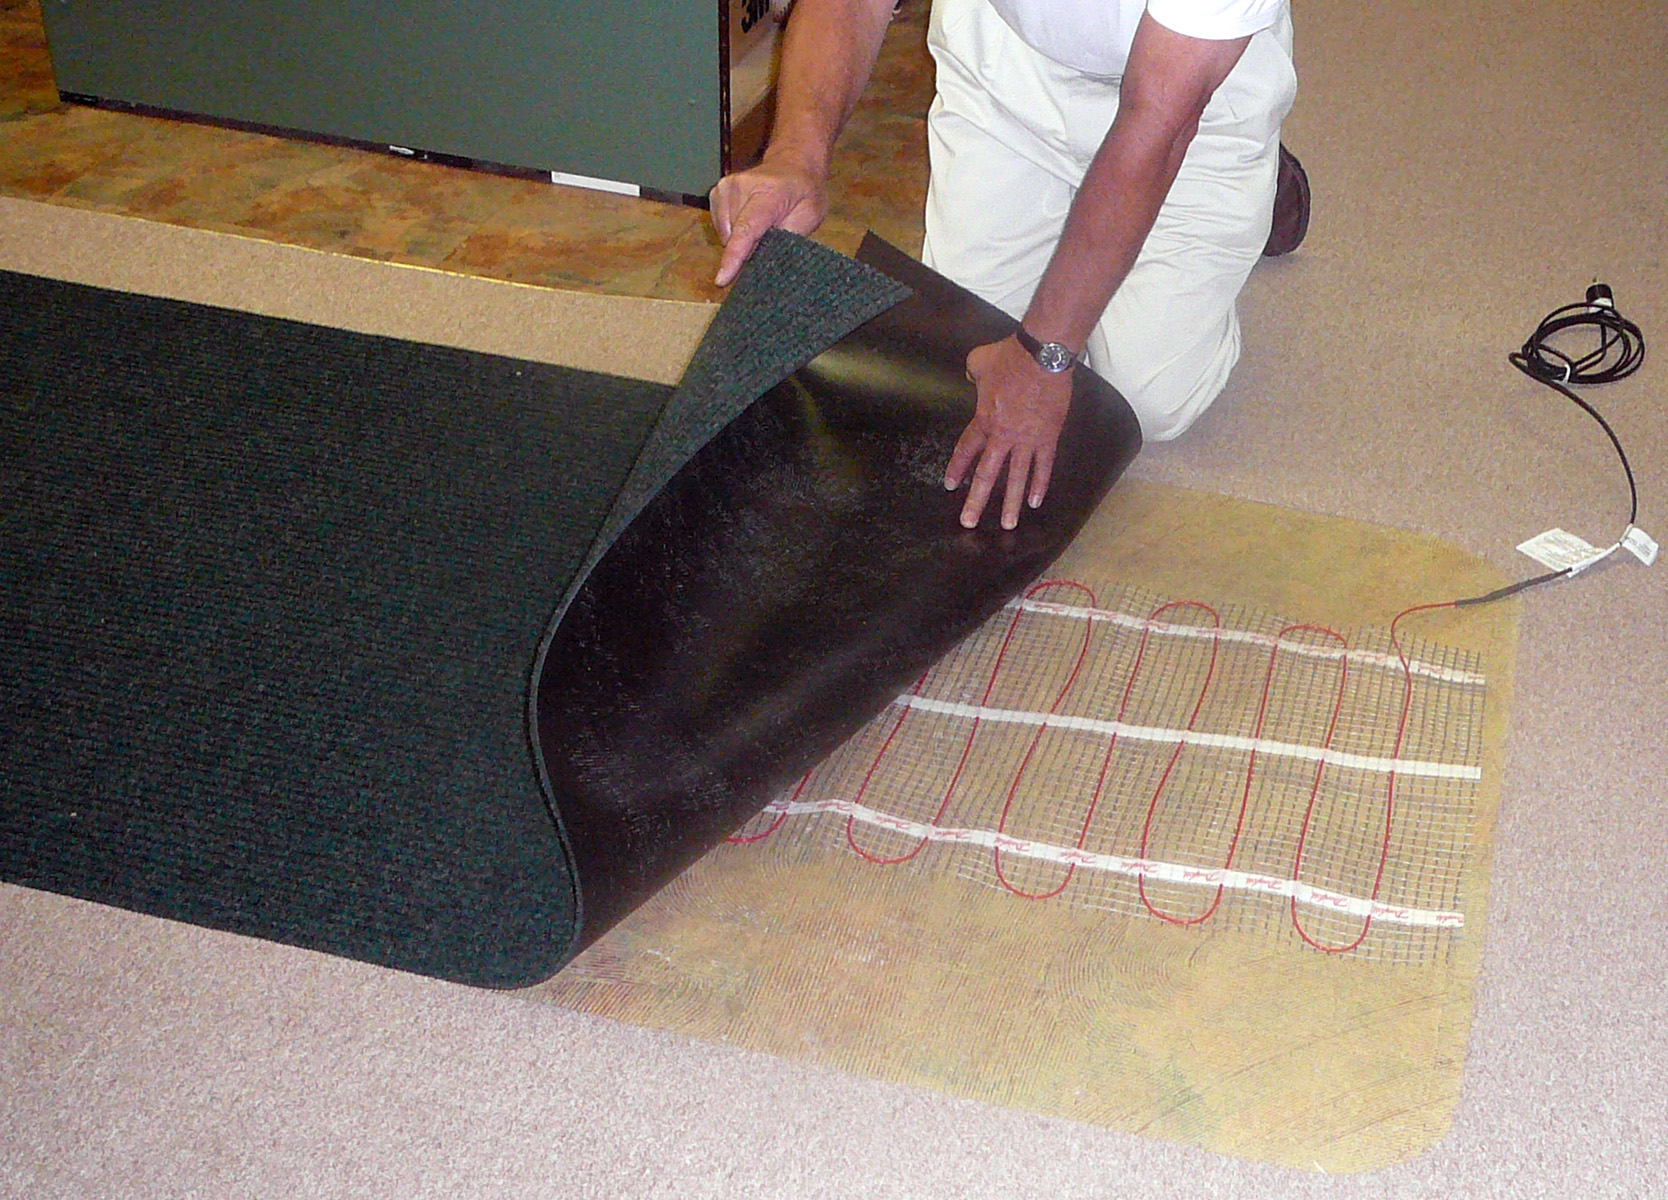 Under carpet or rug heated floor systems warm and dry wet floors martinson nicholls heated floor system being installed under carpetmartinson nicholls new speed heat and electric danfoss heating systems are designed to go dailygadgetfo Images